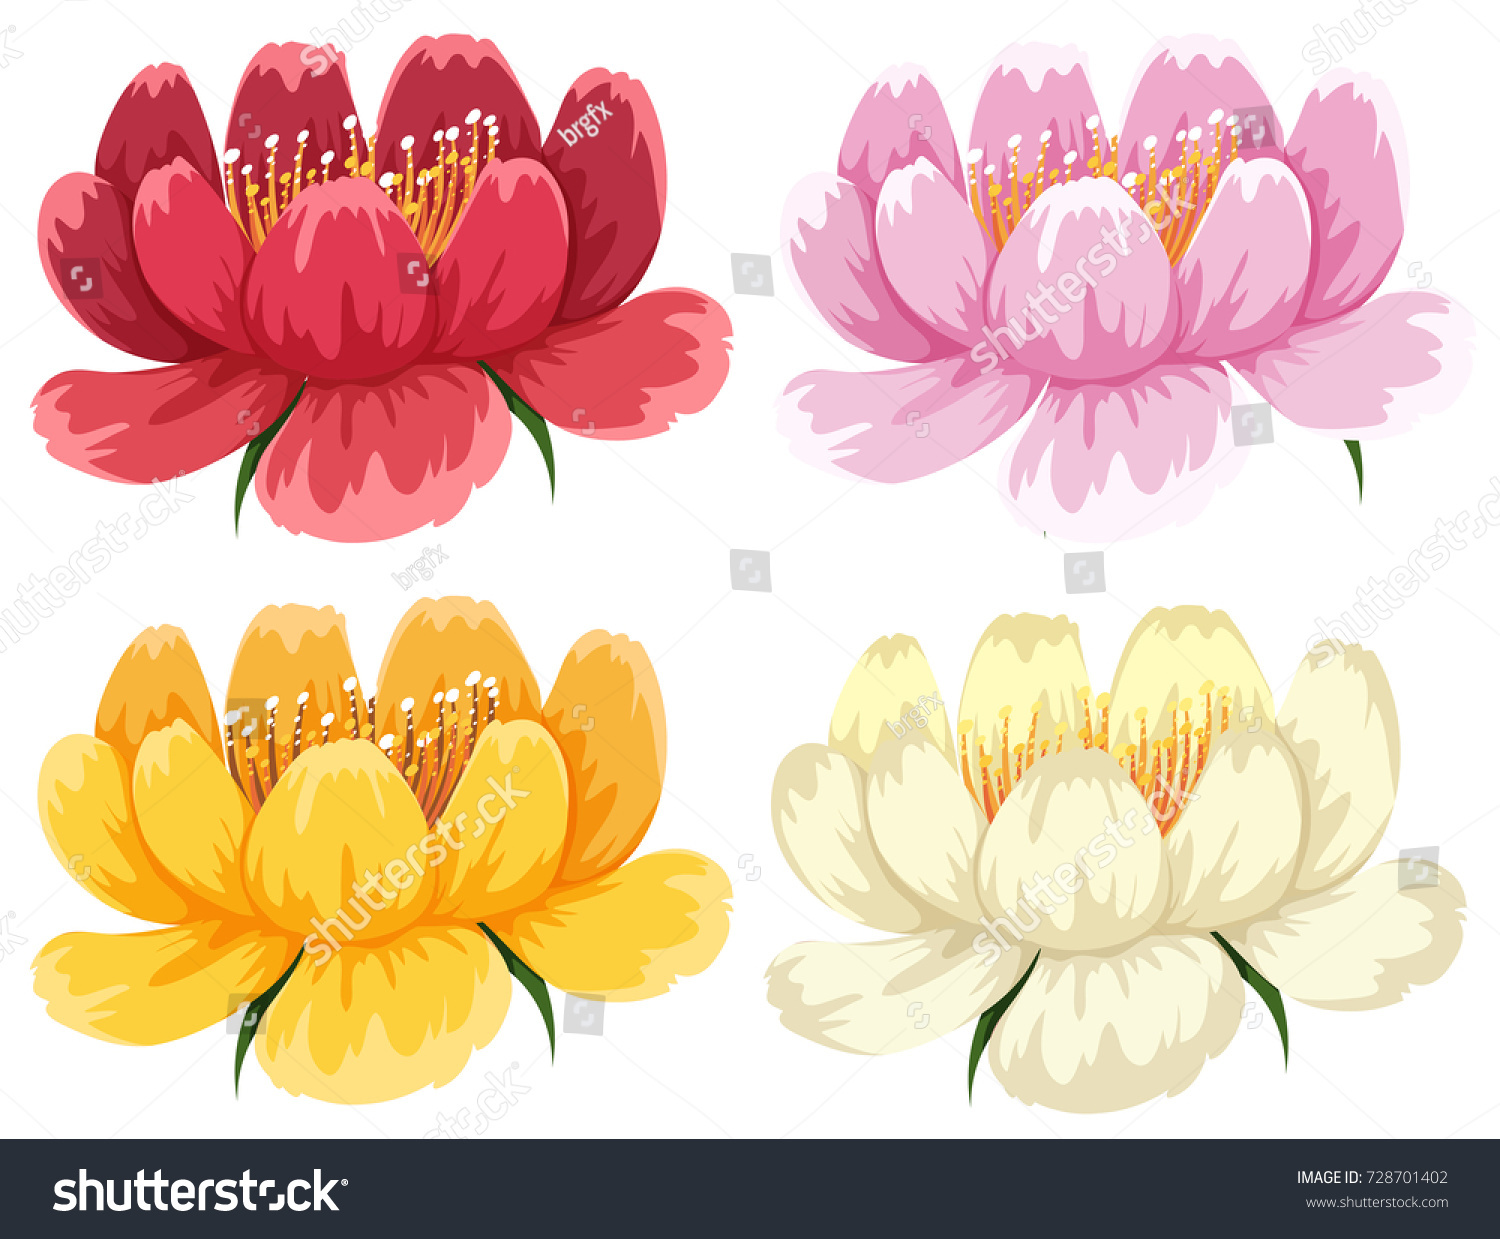 Four Colors Same Type Flower Illustration Stock Vector Hd Royalty